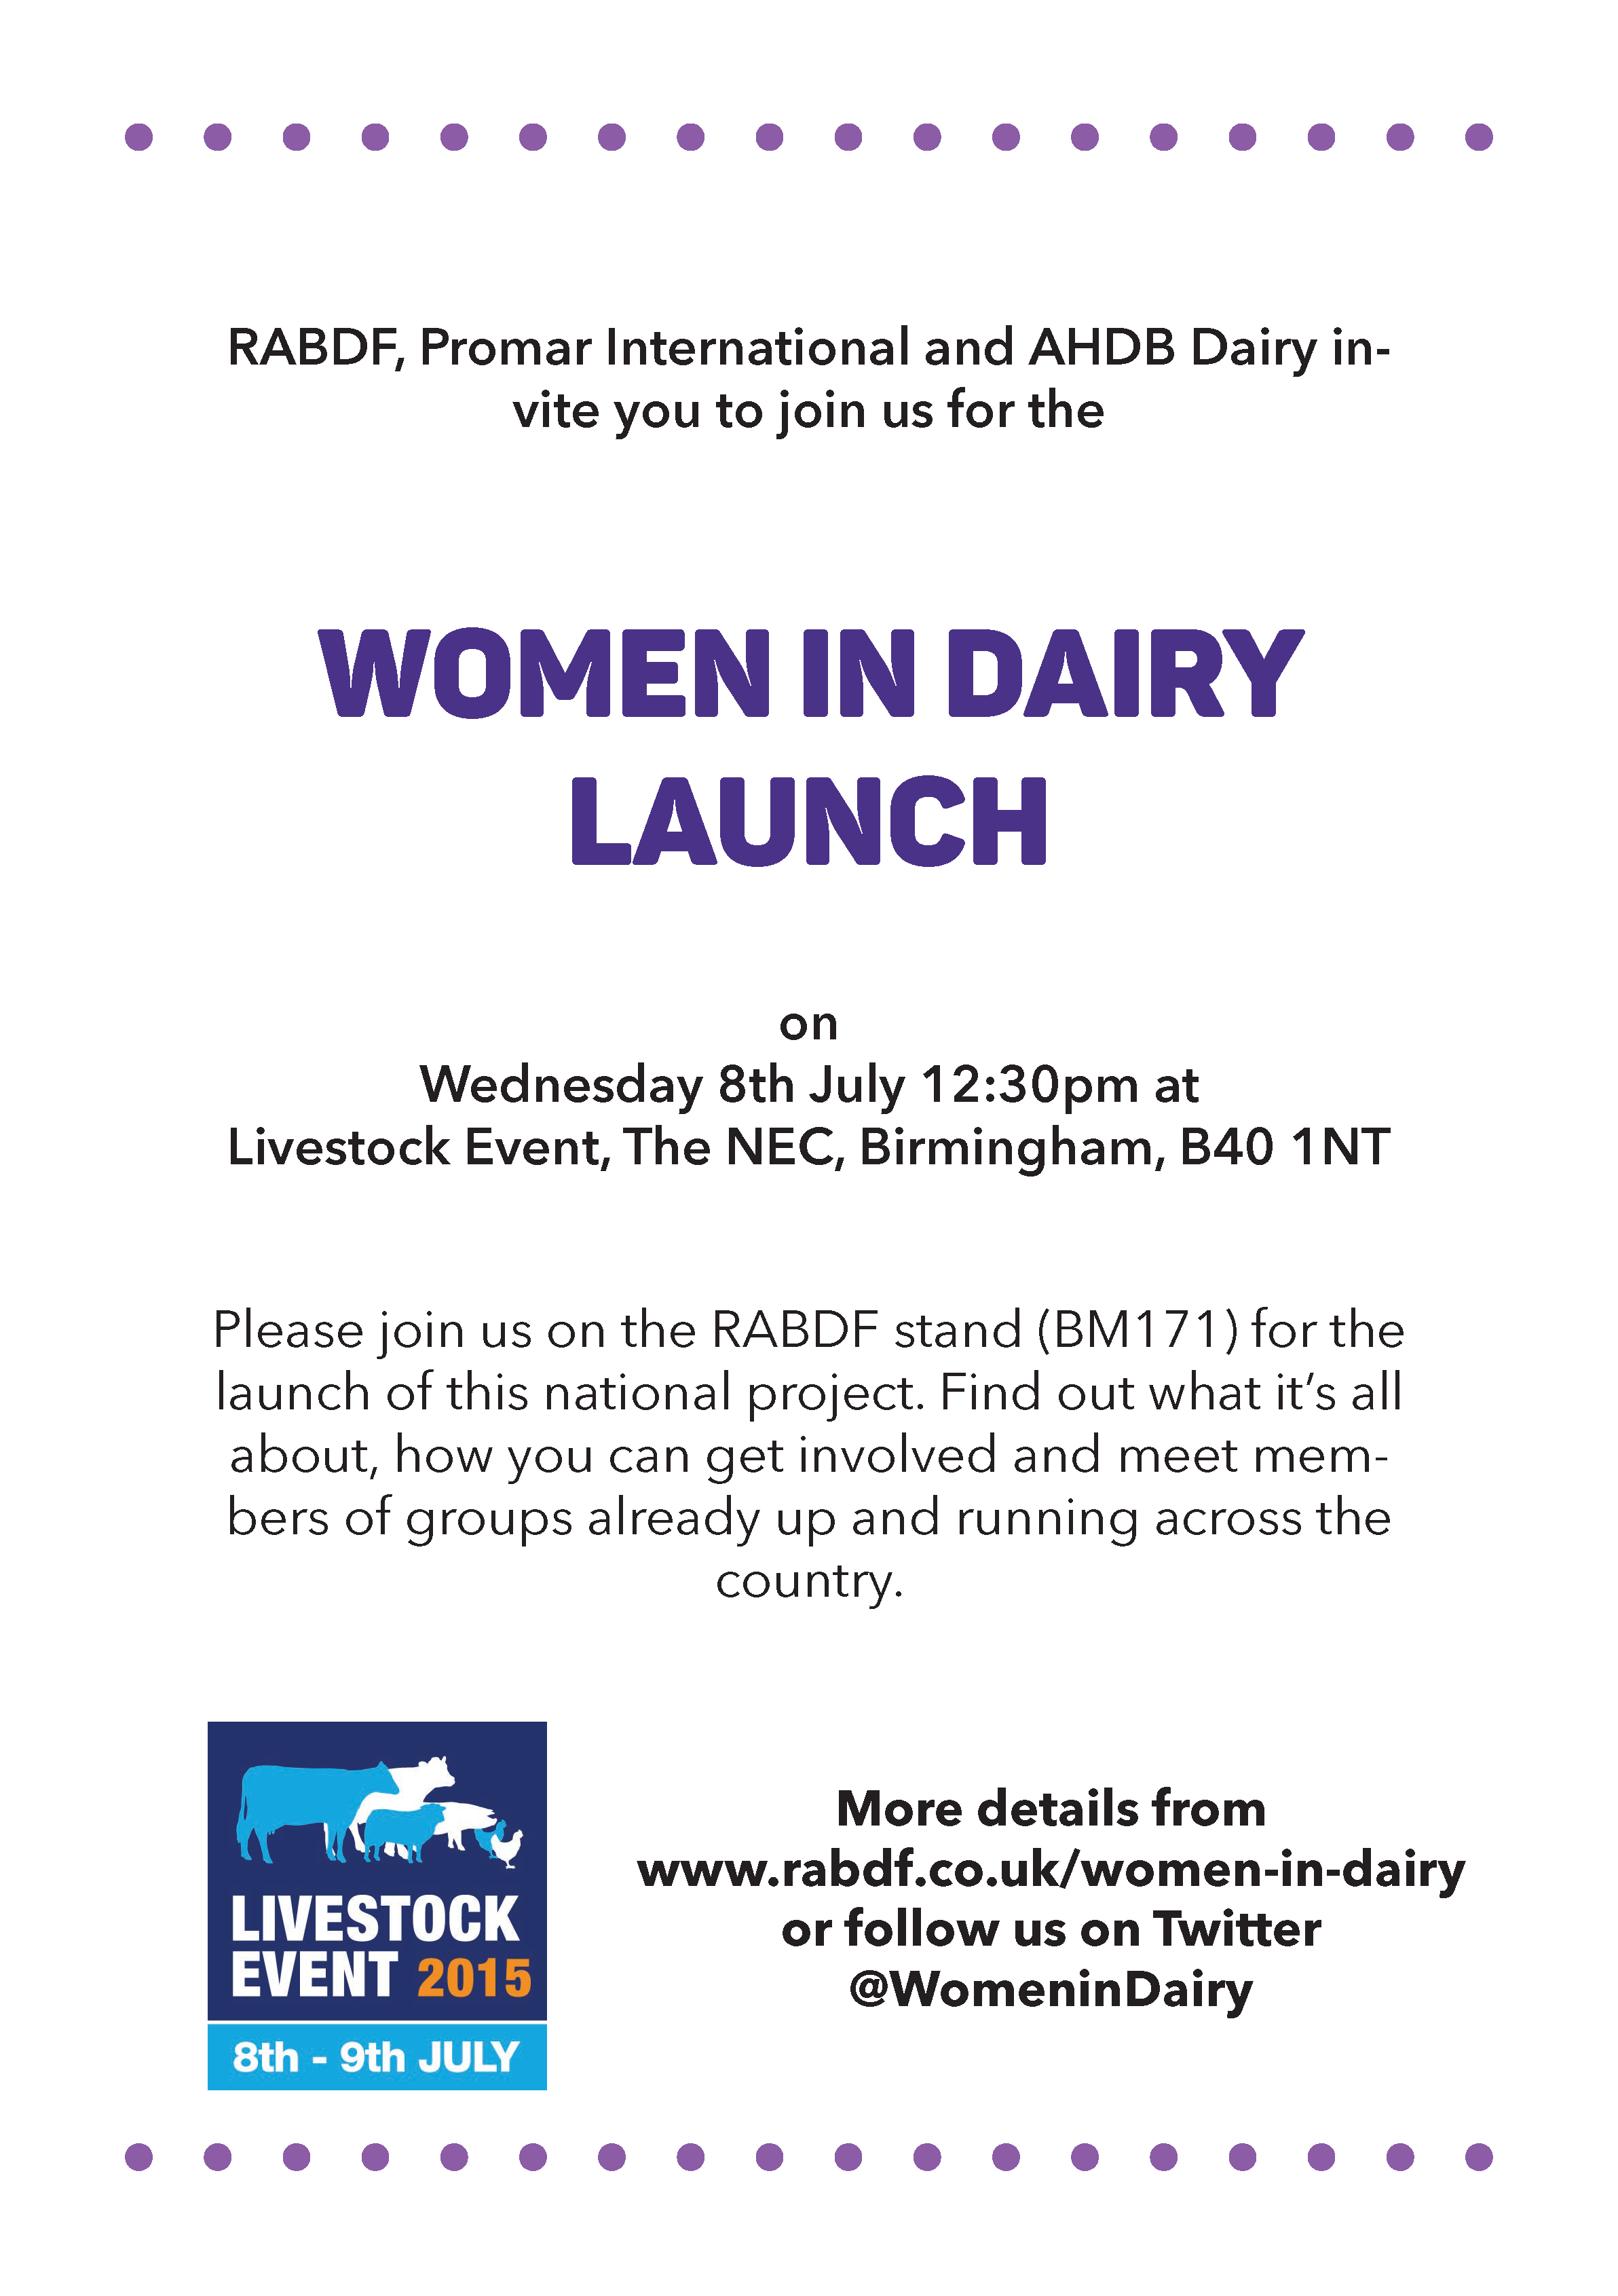 Women in Dairy Livestock Event Invite_Page_2.png